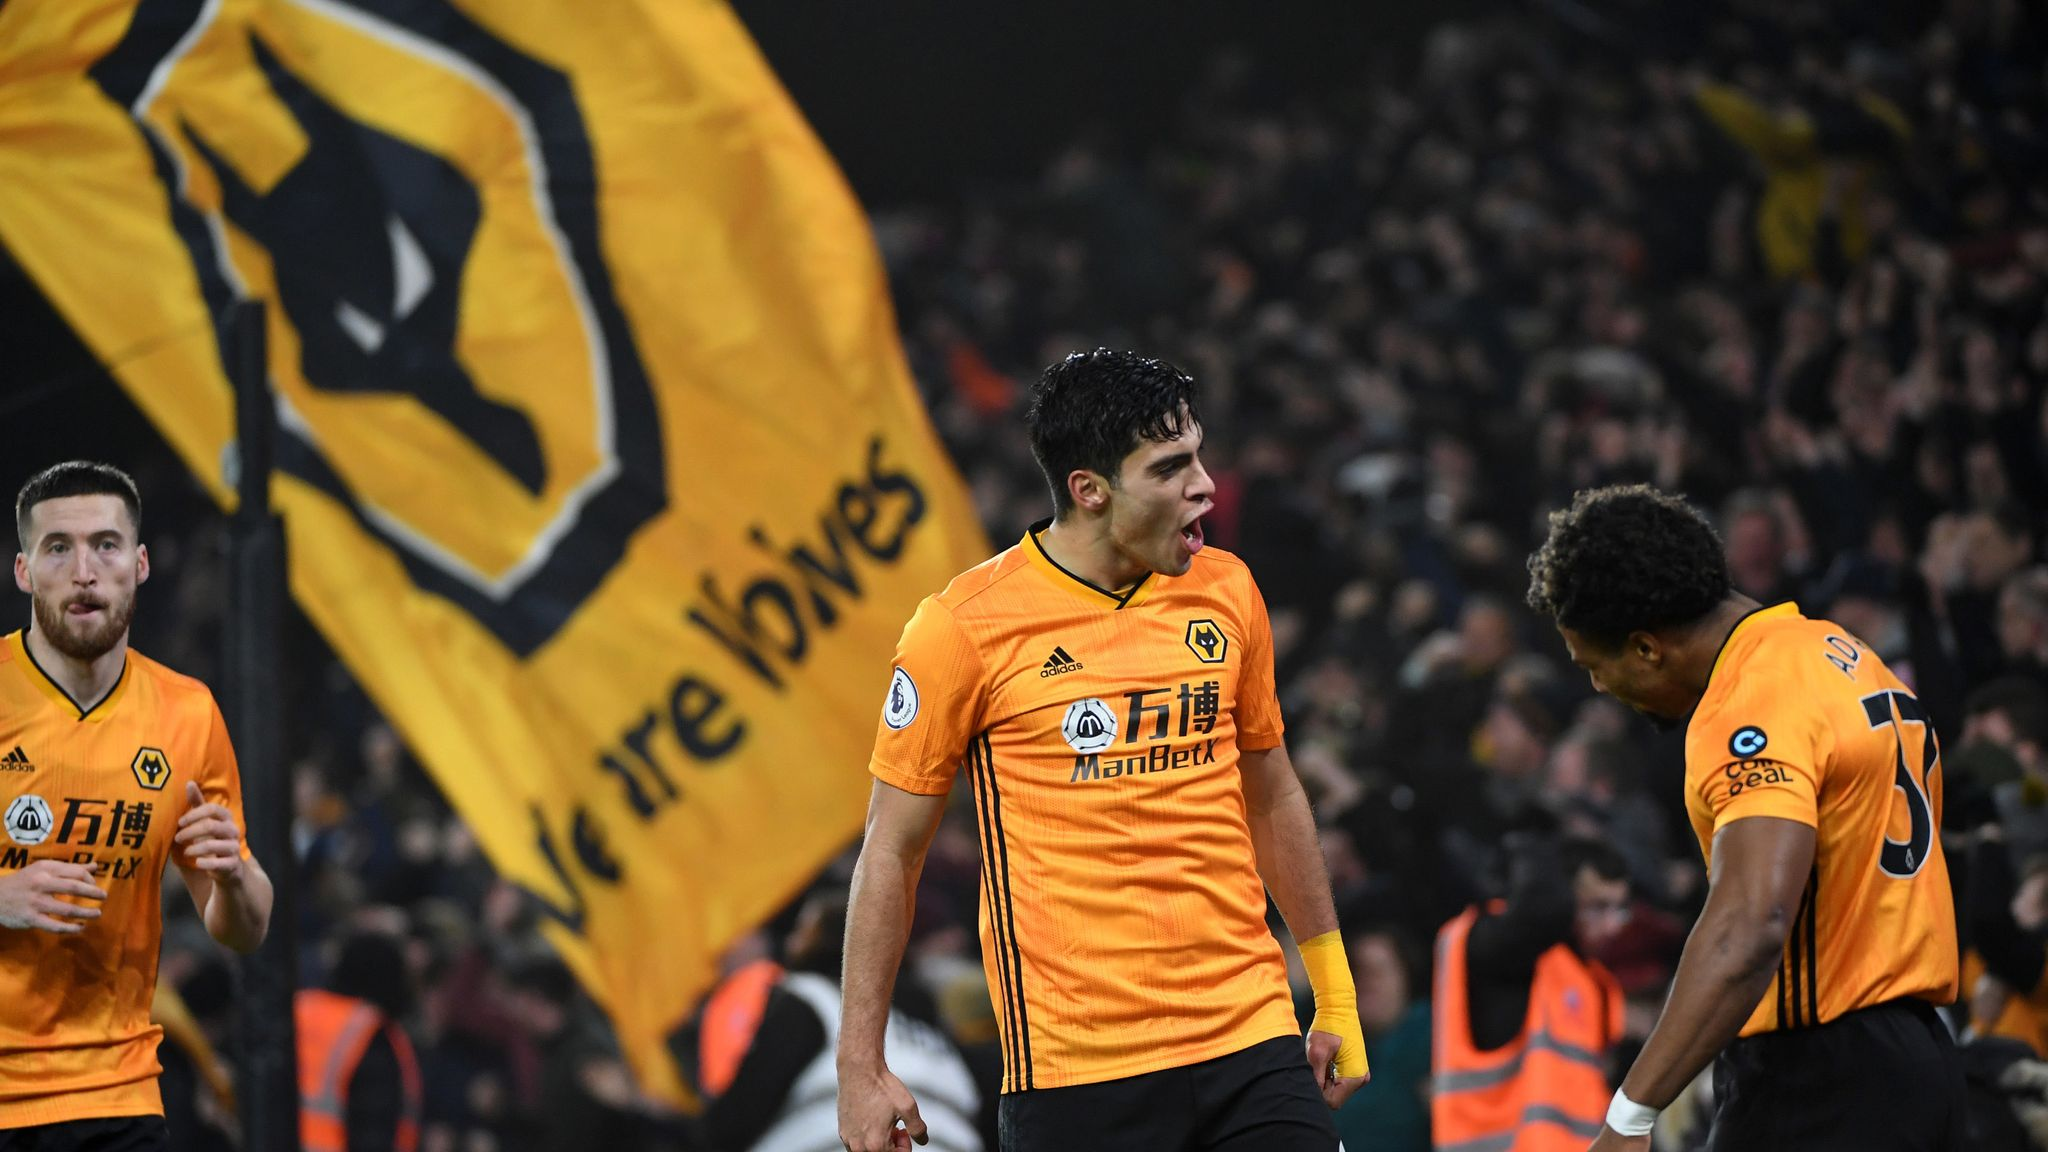 Coronavirus Wolves Urge Fans To Travel With Caution To Europa League Game At Espanyol Football News Sky Sports